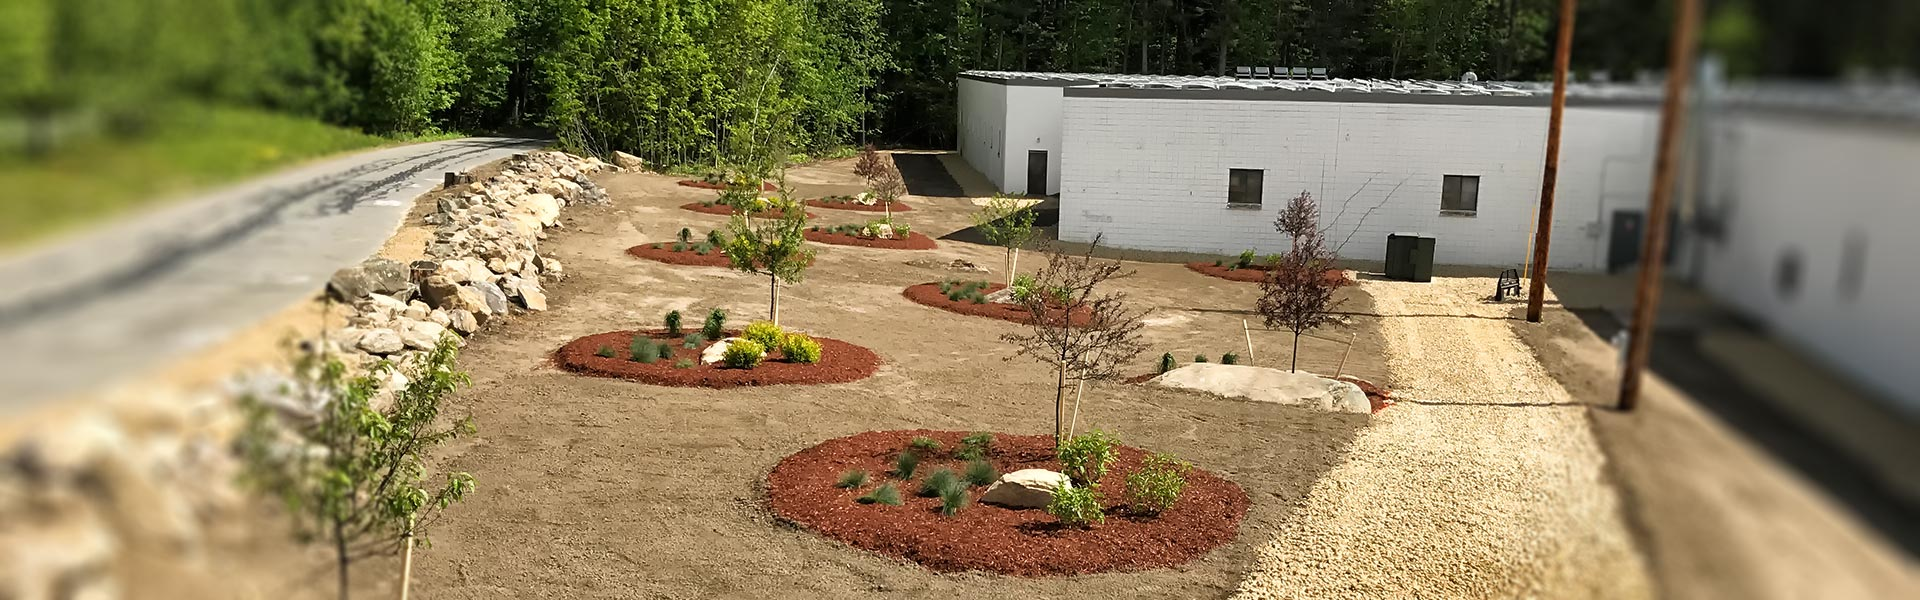 Commercial landscaping with new trees